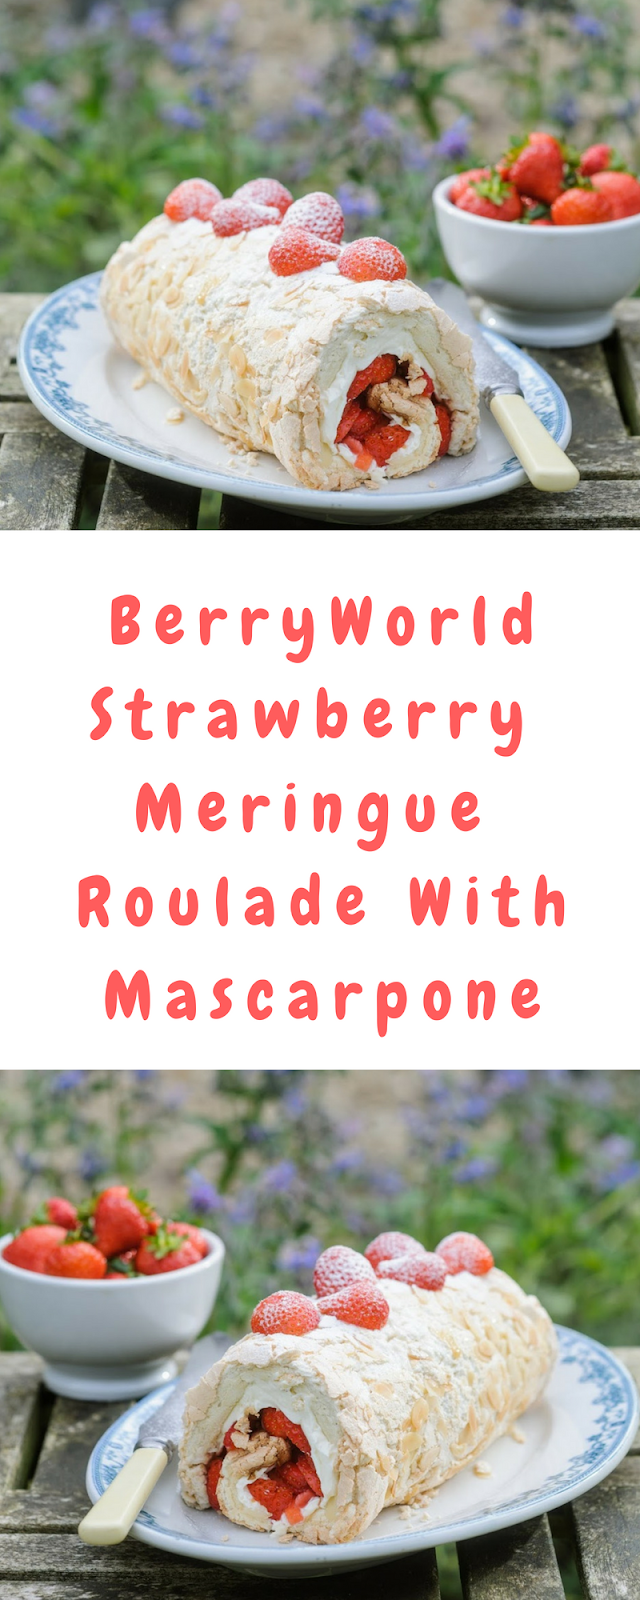 BerryWorld Strawberry Meringue Roulade With Mascarpone